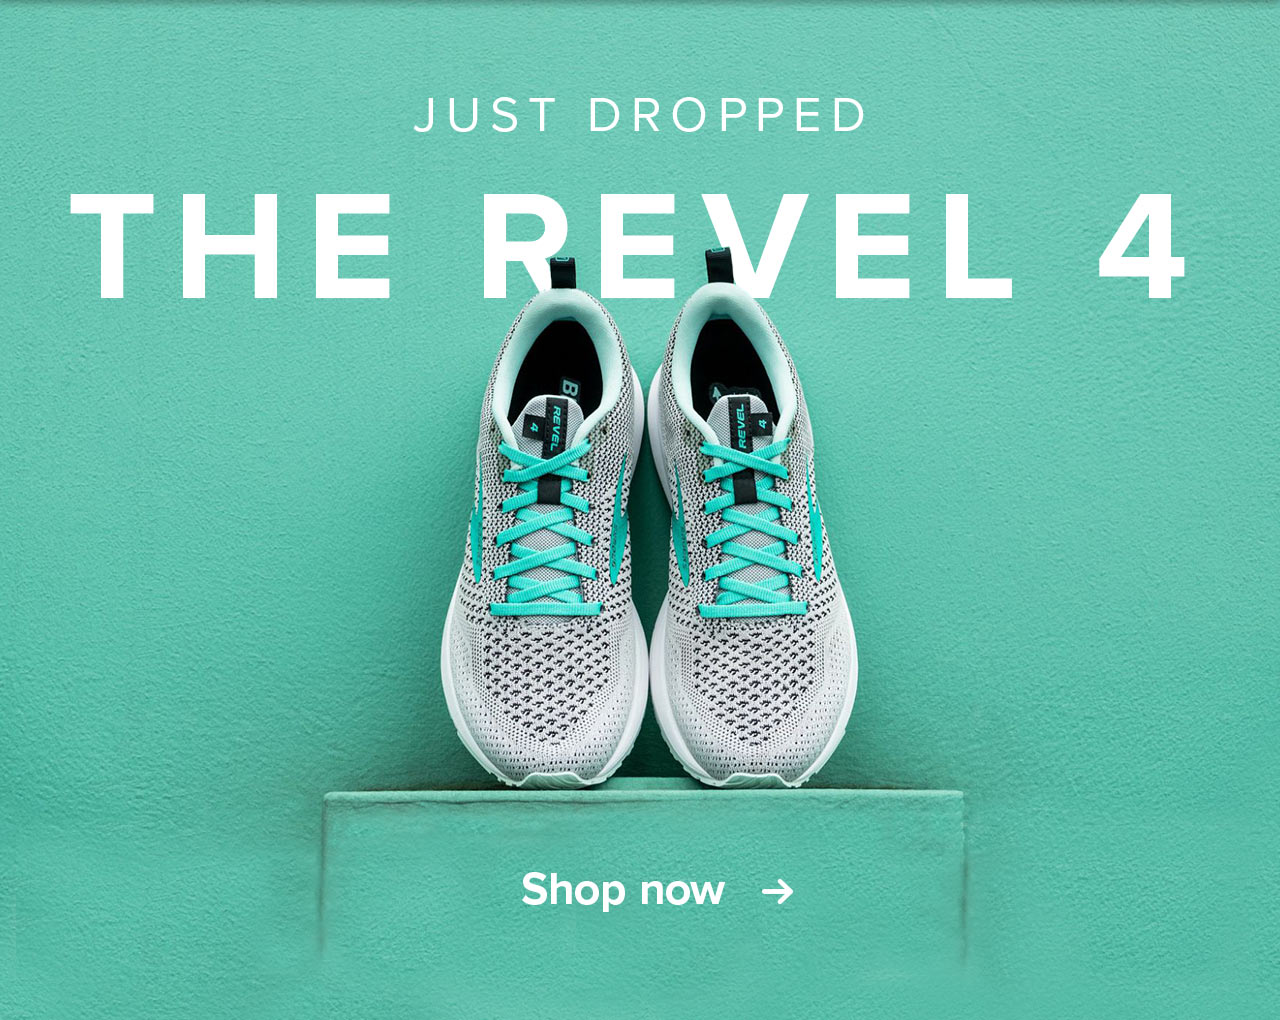 Just Dropped: The Revel 4   Shop Now